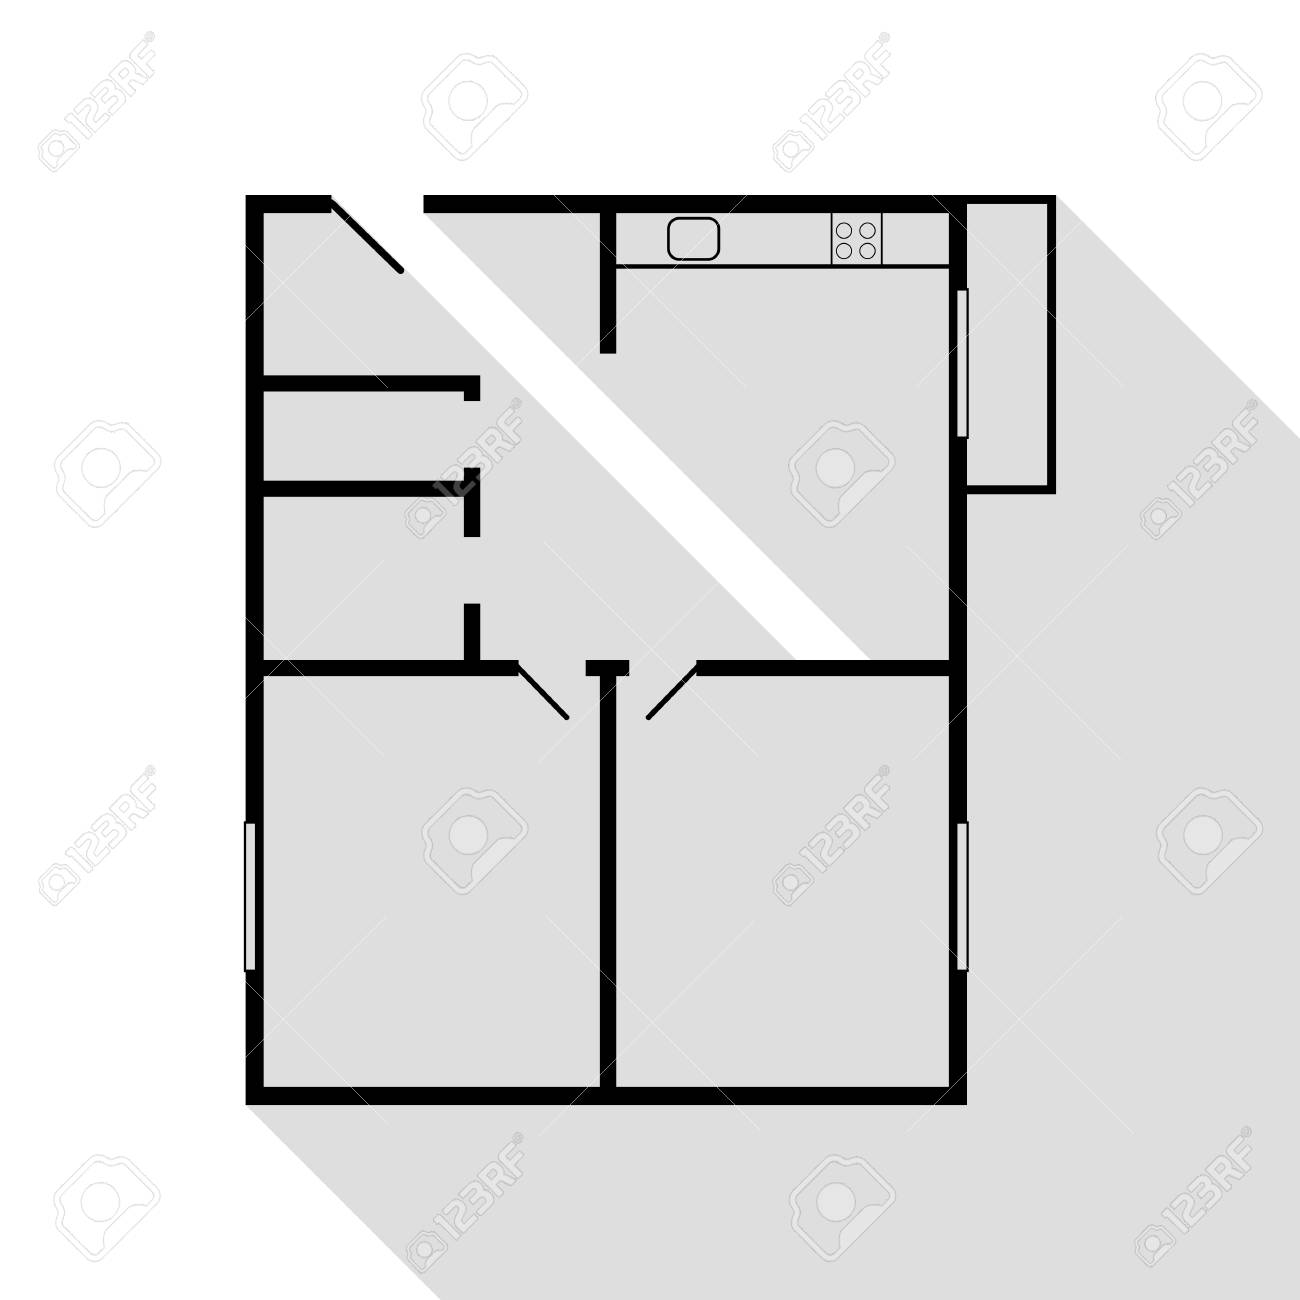 Apartment house floor plans. Black icon with flat style shadow.. on construction icons, workshop icons, drafting icons, design icons, land icons, fireplace icons, farm icons, architecture icons, drawing icons, head icons, study icons, foundation icons, room icons, builder icons, remodeling icons, human icons, london icons, housing icons, household icons, architectural icons,